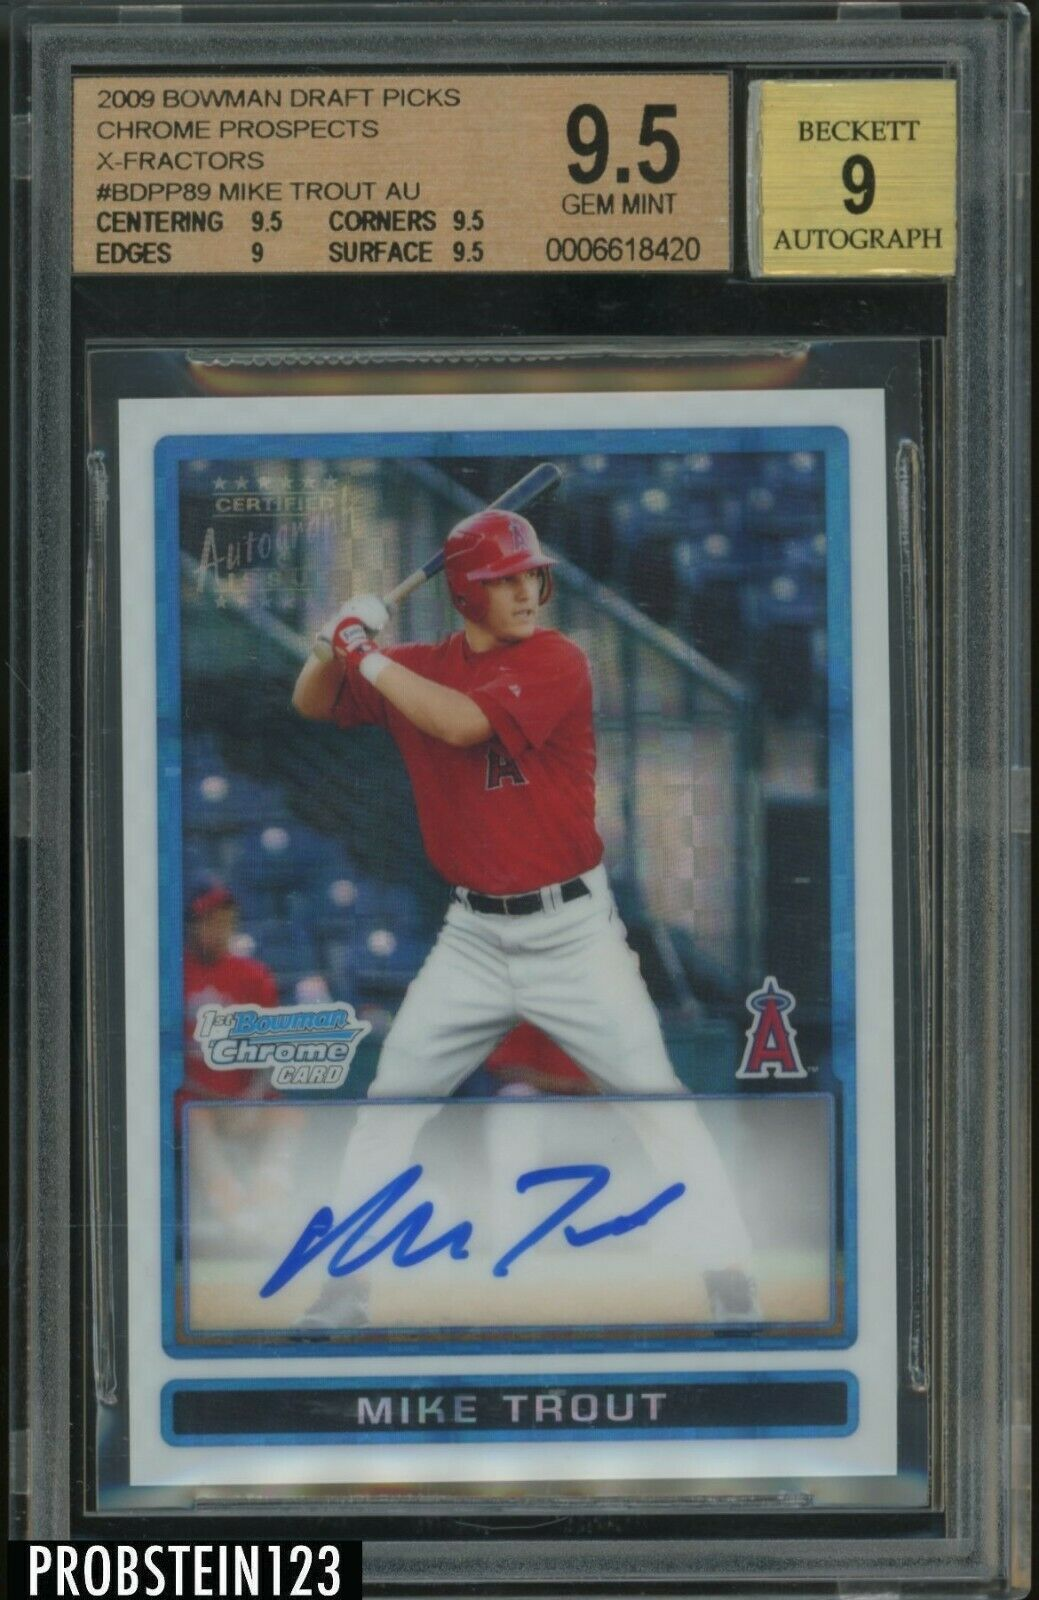 2009 Bowman Chrome XFractor Mike Trout RC Rookie AUTO 225 Angels BGS 95